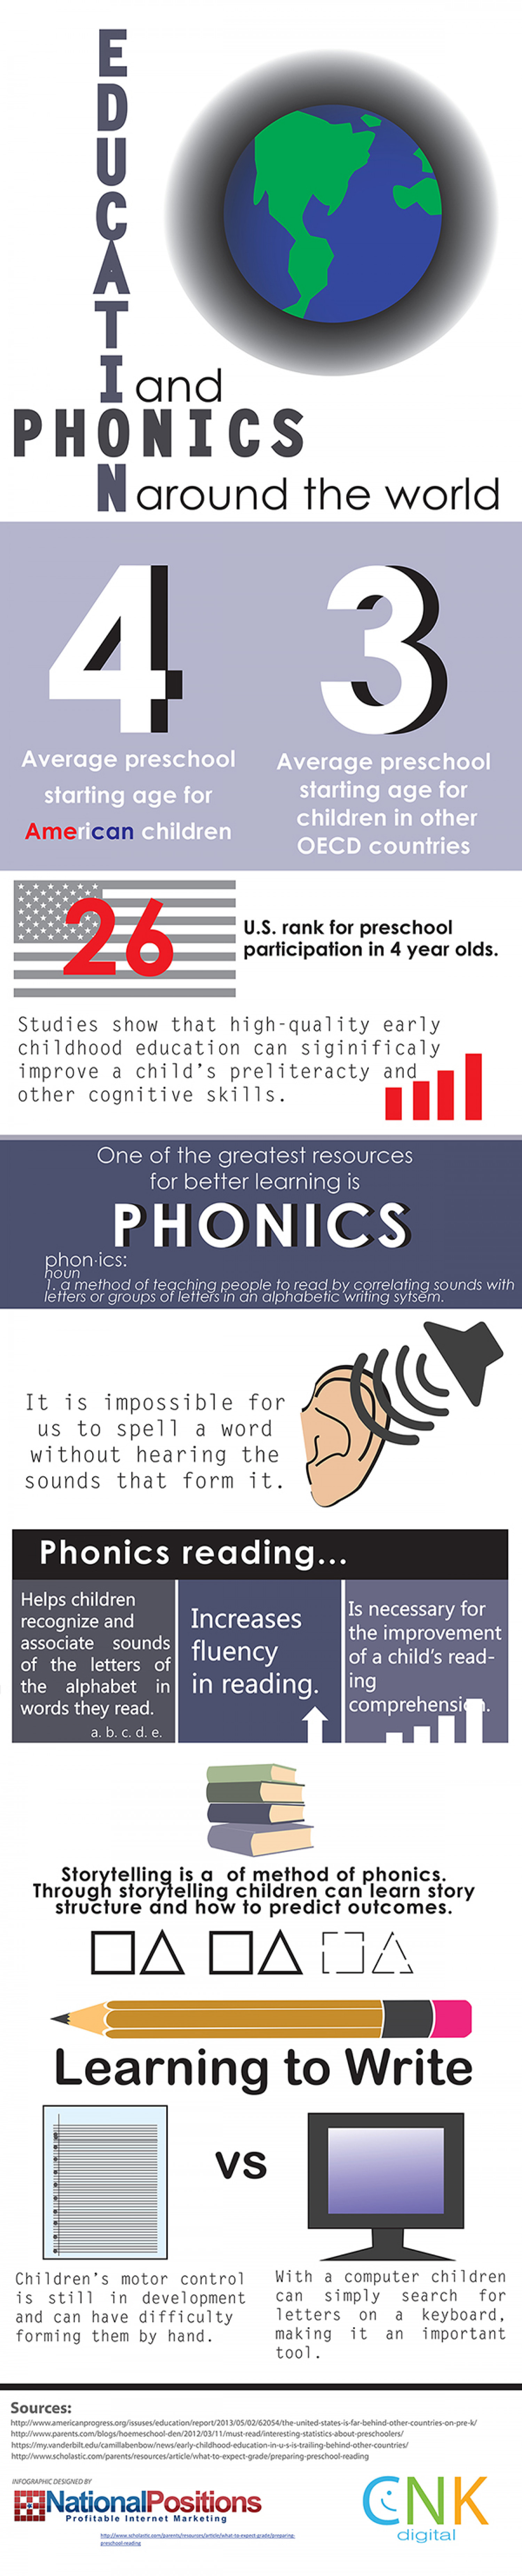 Education And Phonics Around The World Infographic